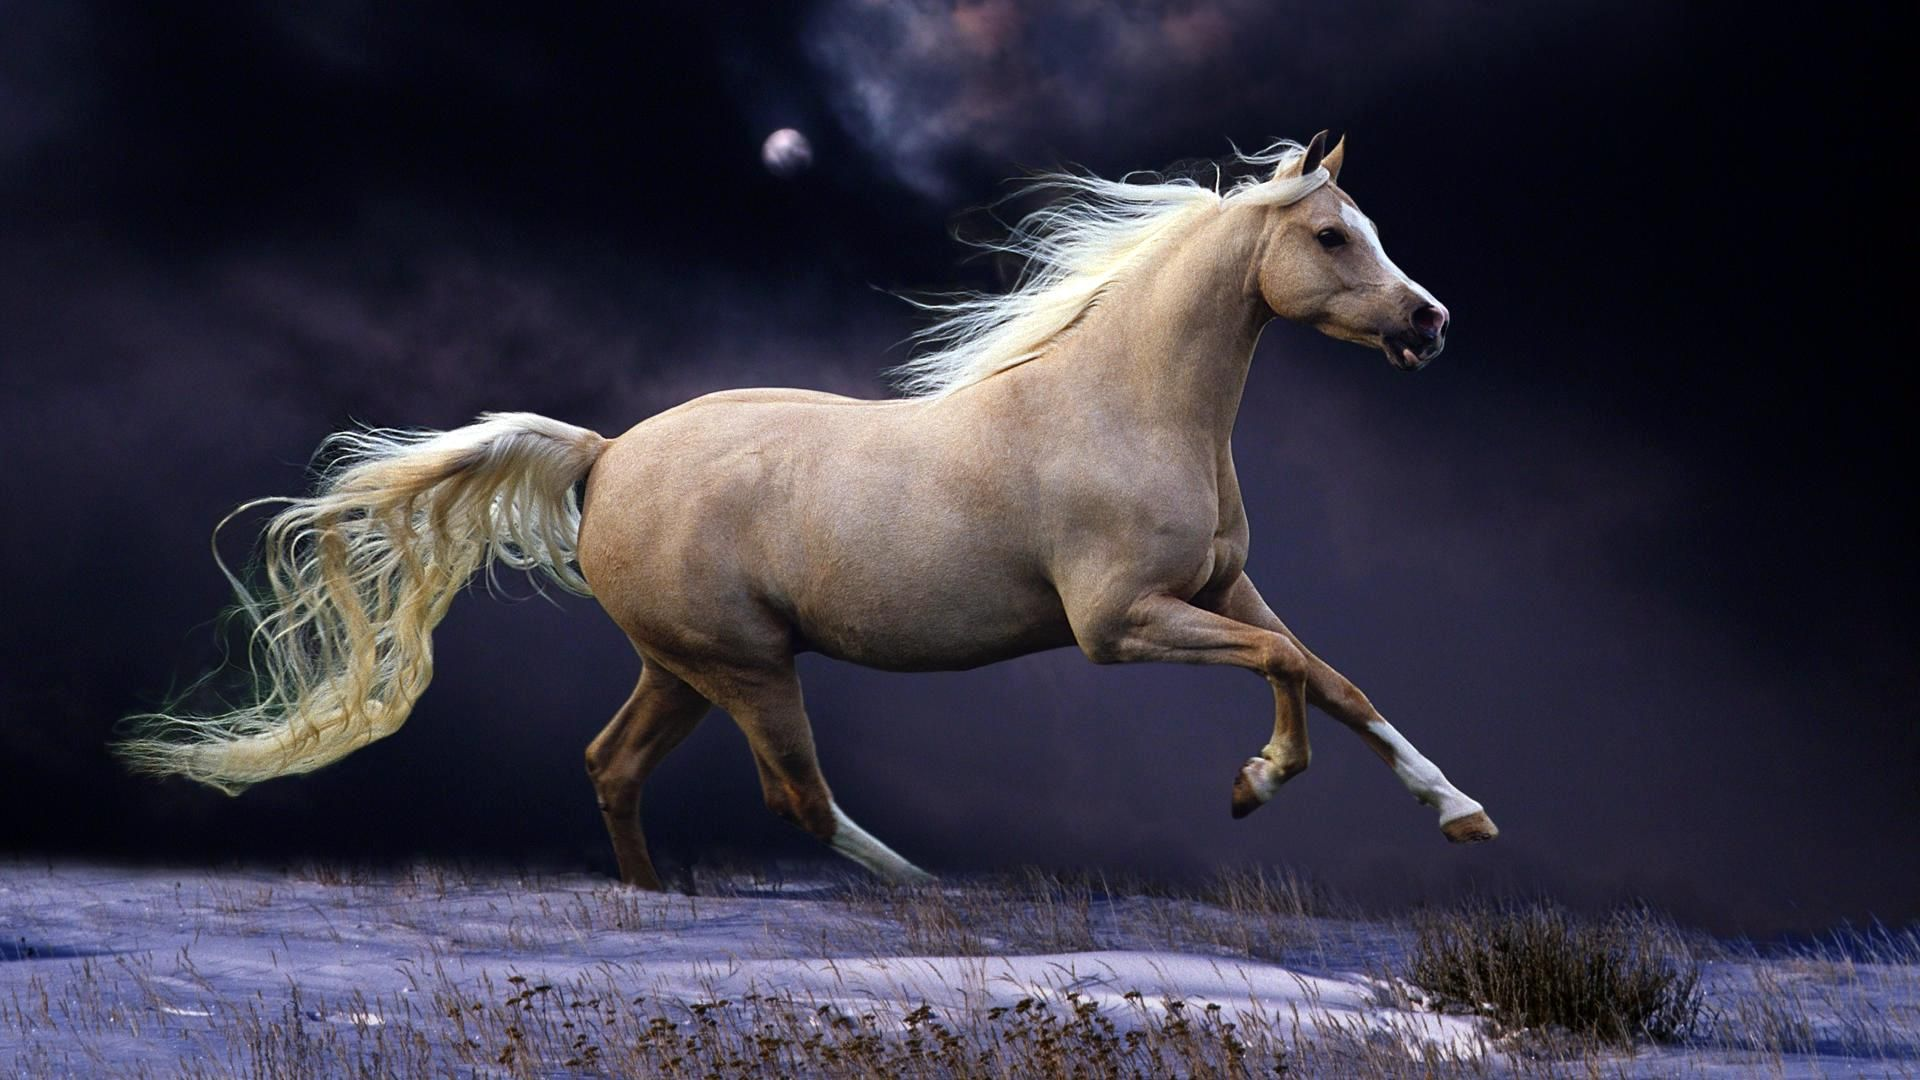 Must see Wallpaper Horse Stunning - 2a47f47be09d46e3038703debbbbdcf0  Collection_465140.jpg